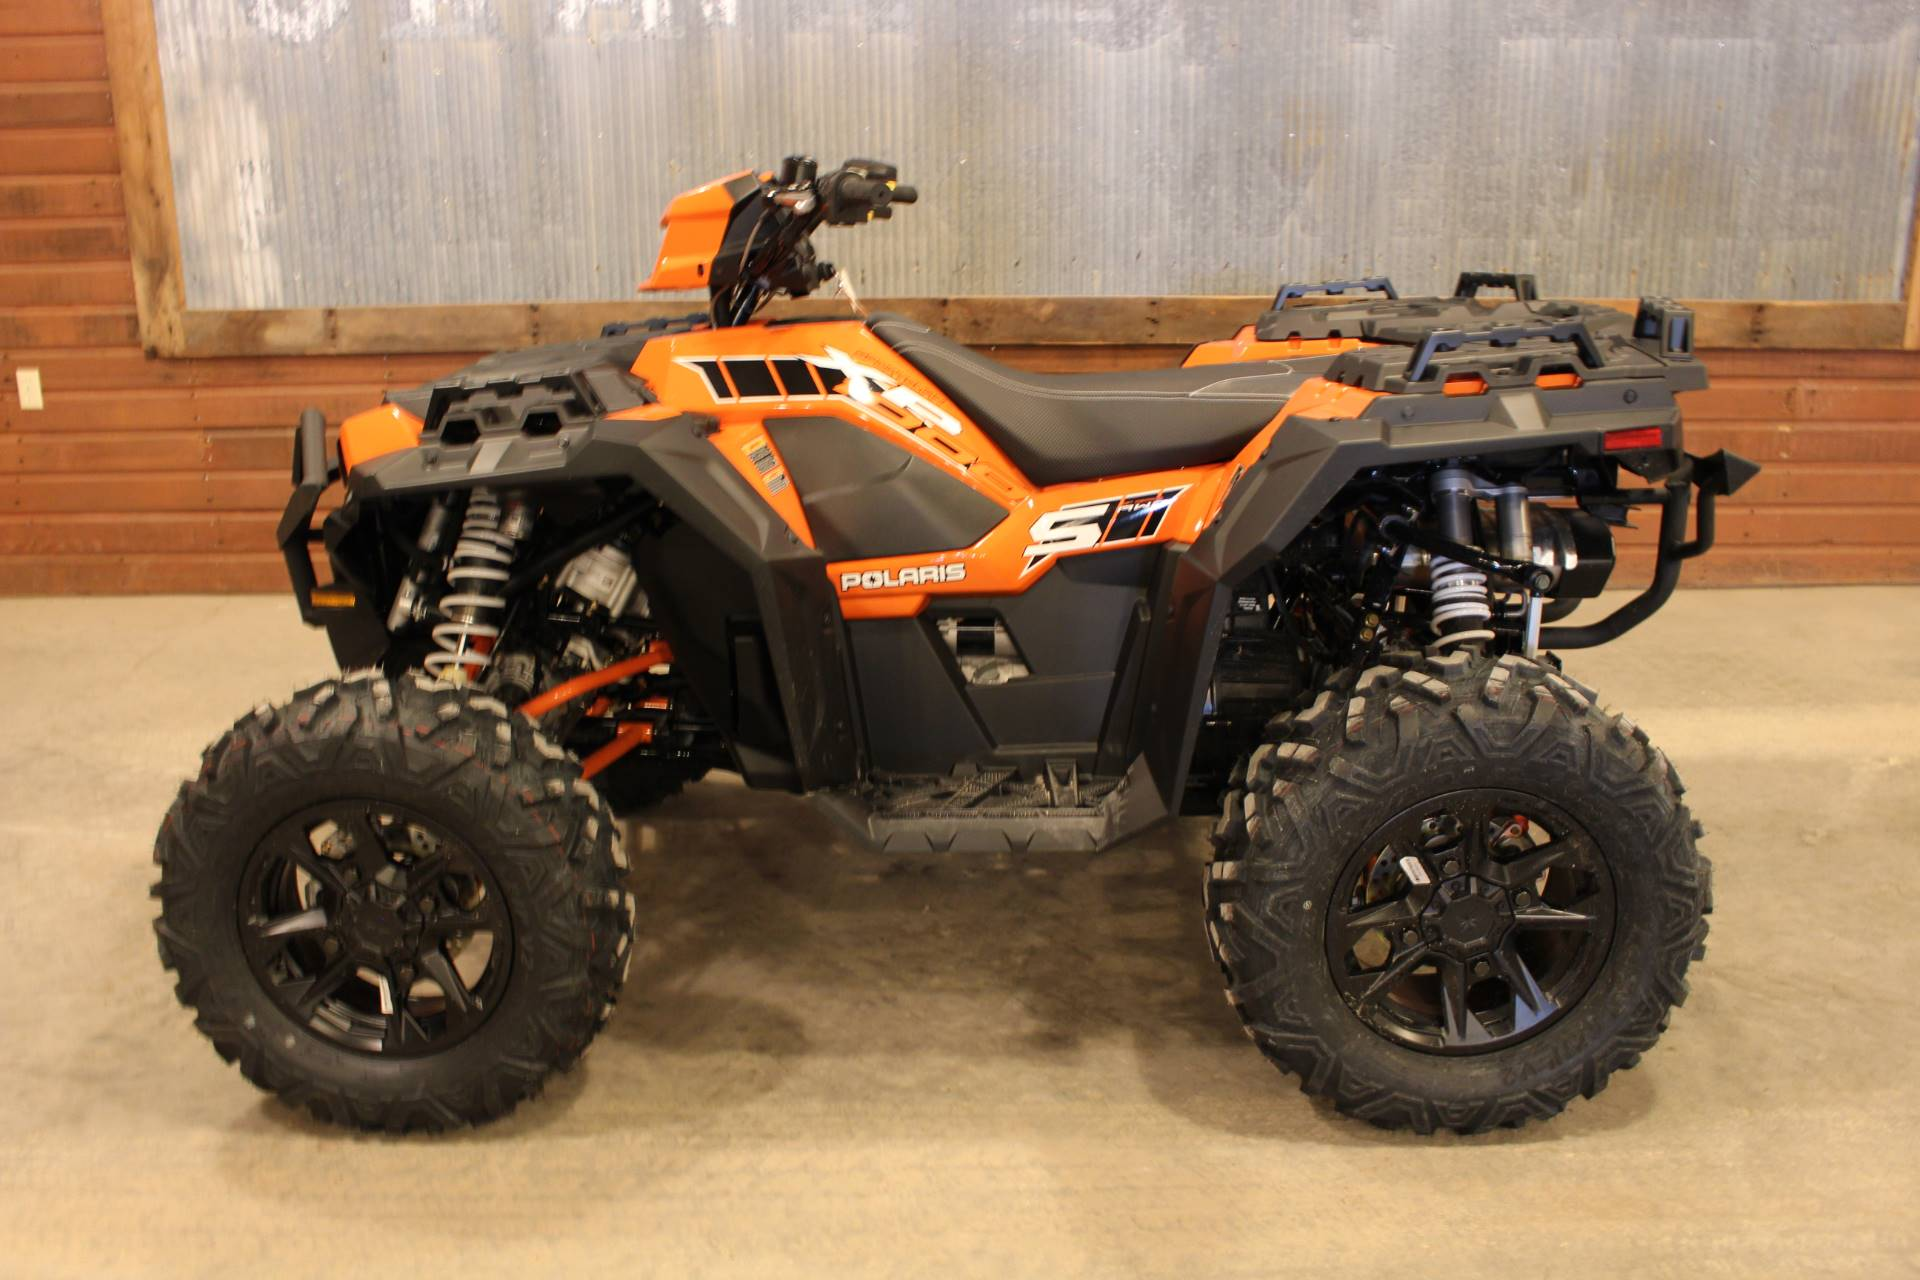 2020 Polaris Sportsman XP 1000 S in Valentine, Nebraska - Photo 1